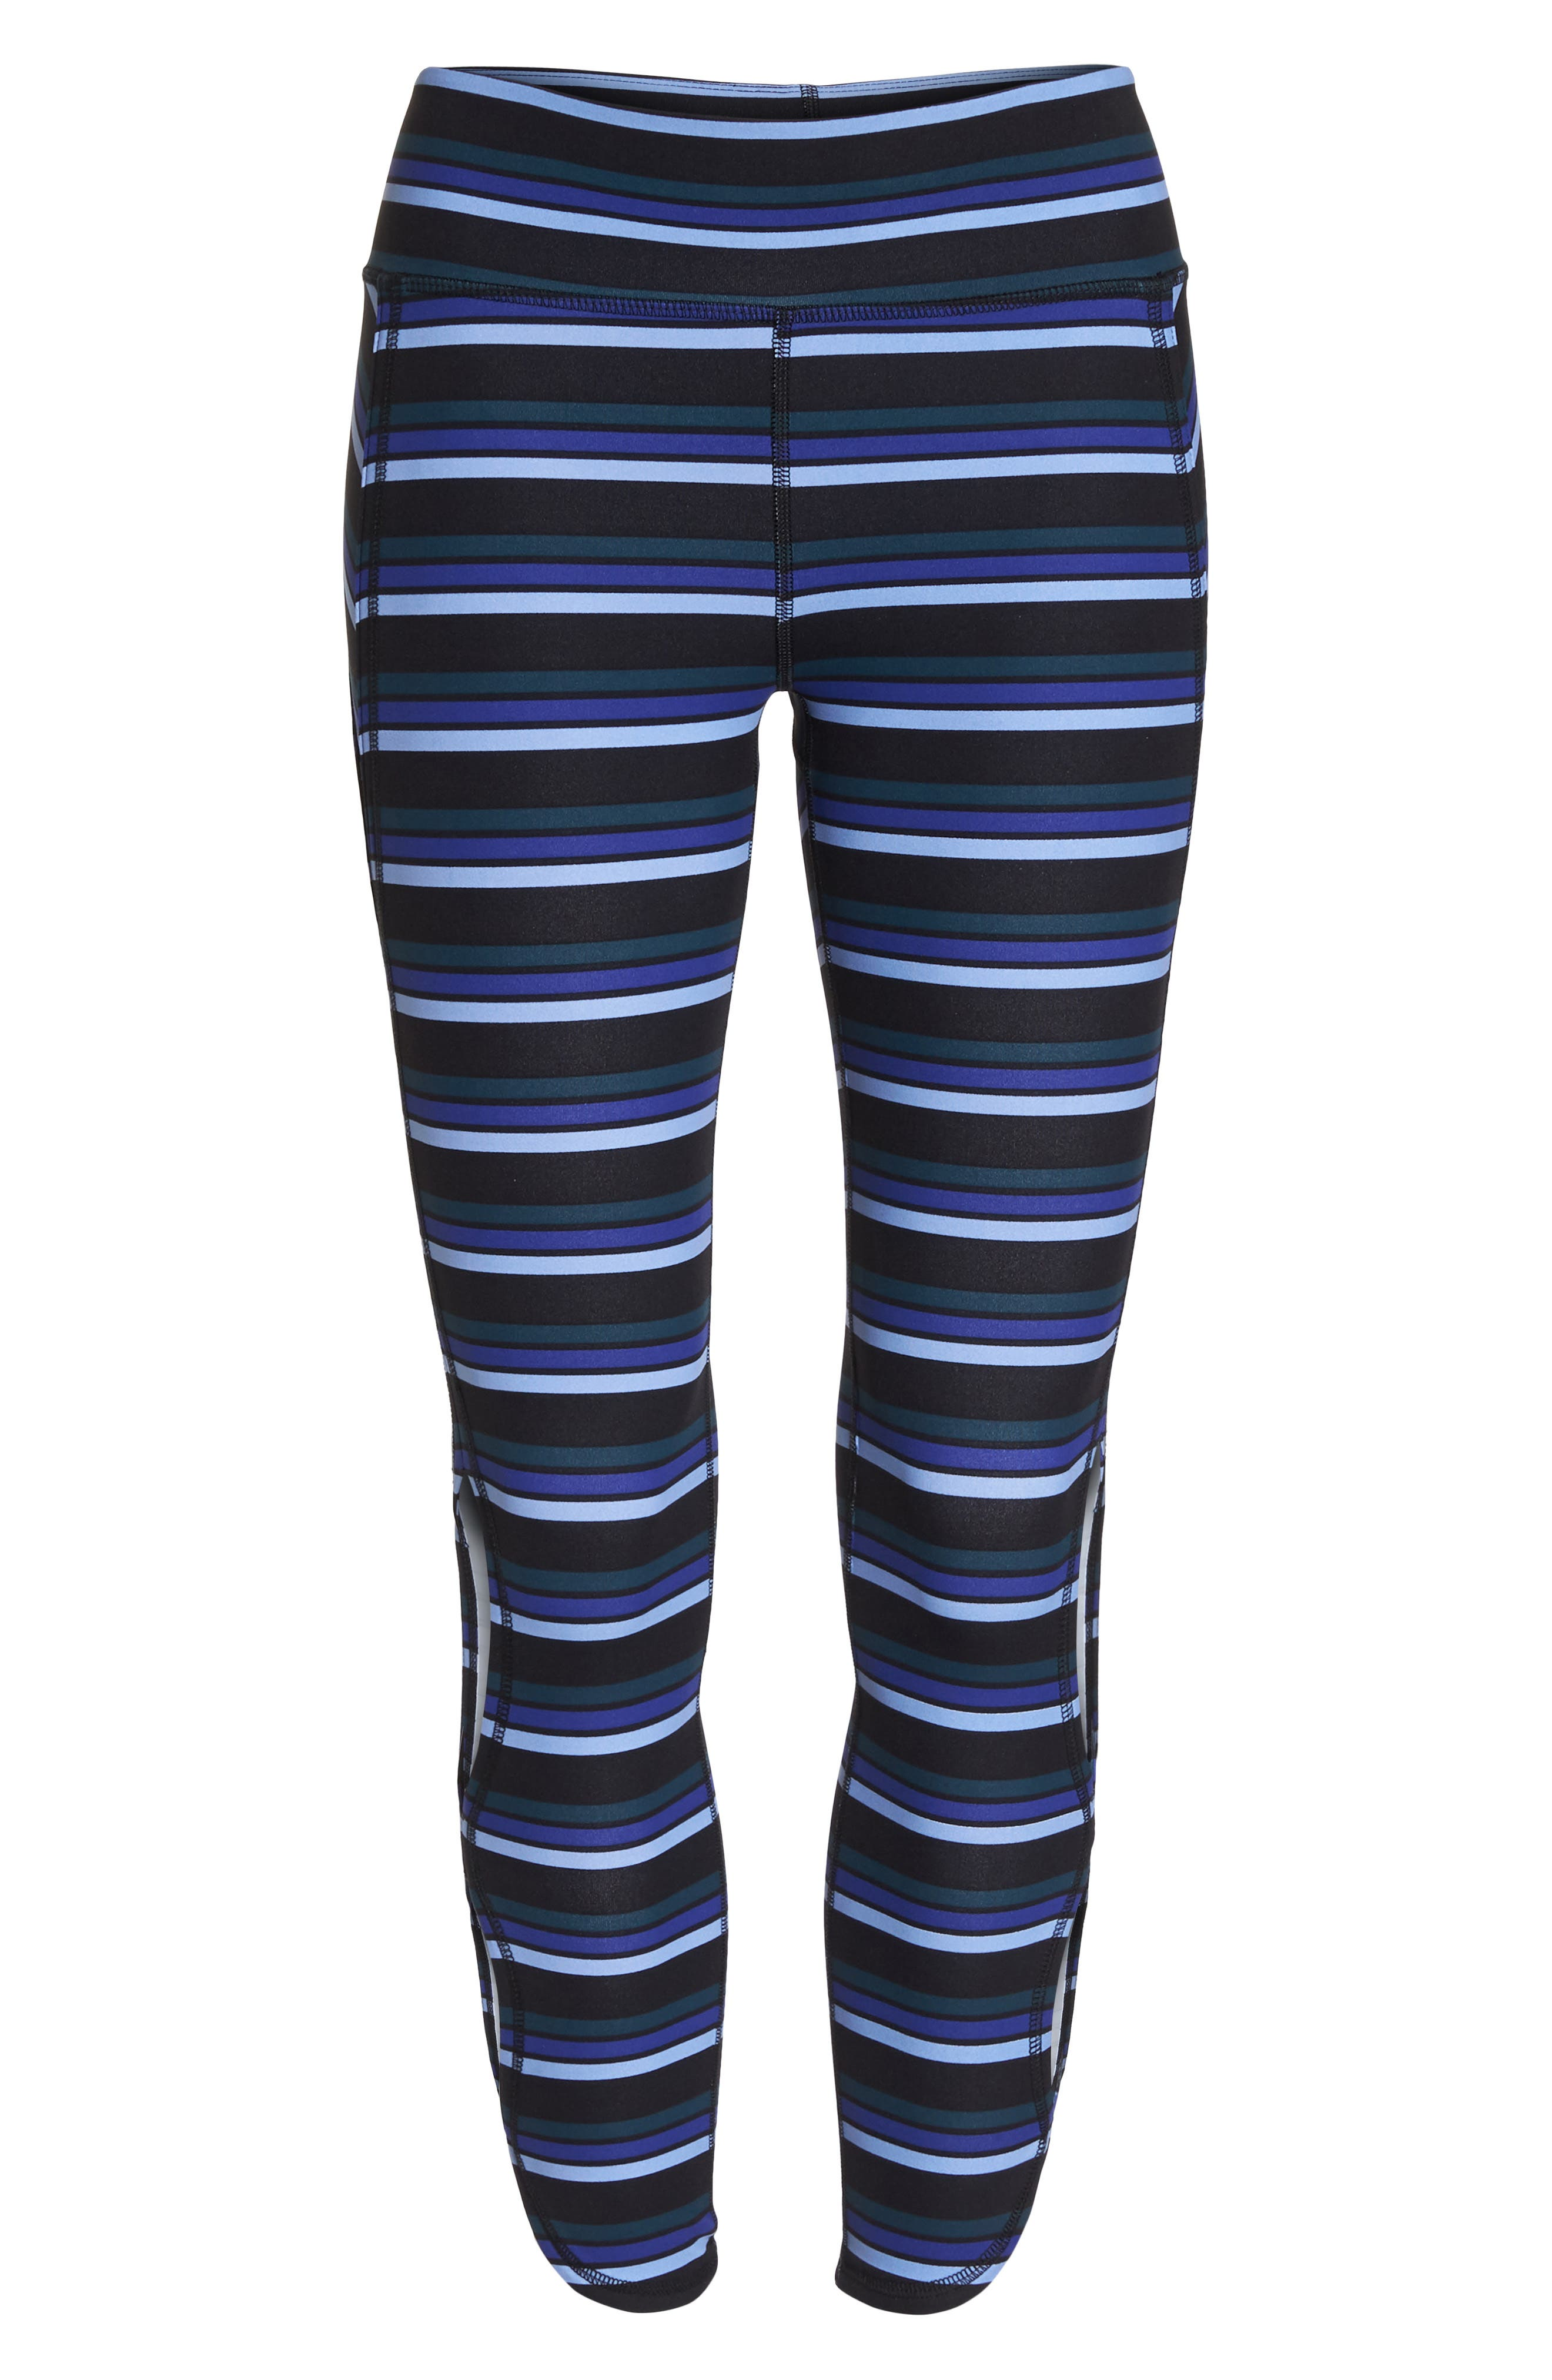 FREE PEOPLE MOVEMENT,                             Stripe Infinity Leggings,                             Alternate thumbnail 7, color,                             001